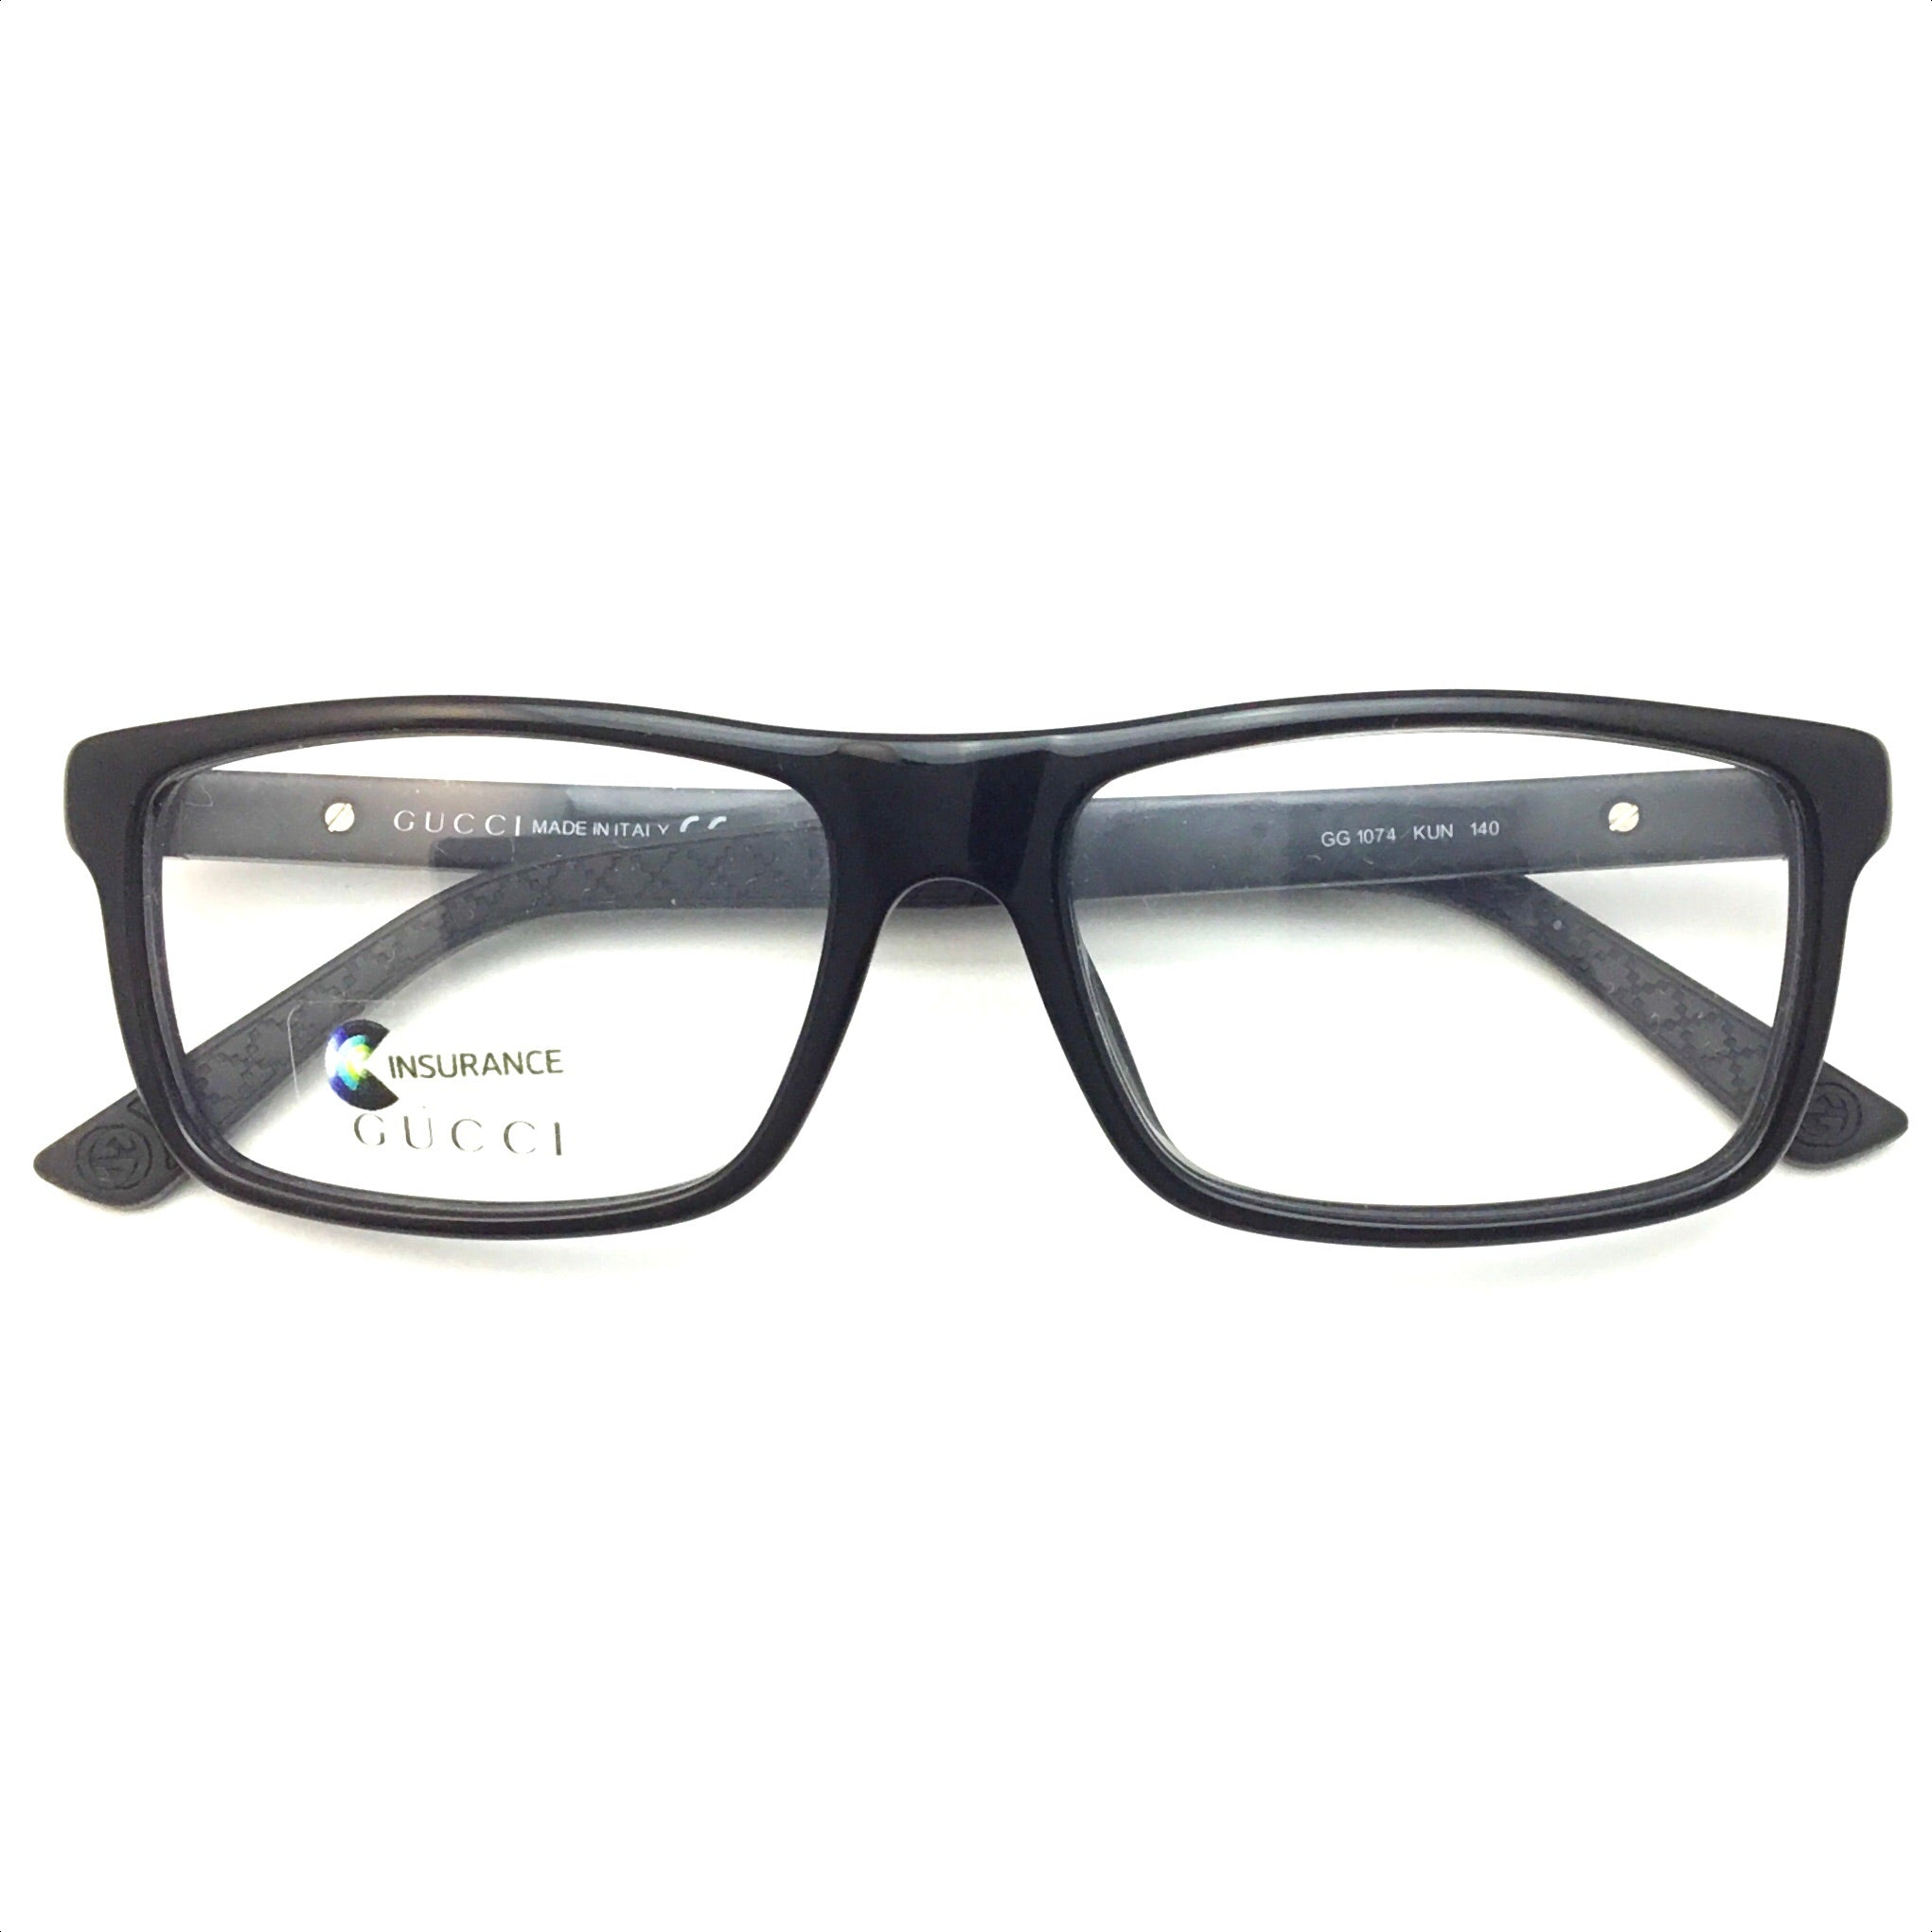 Gucci Glasses $299 SPECIAL P4